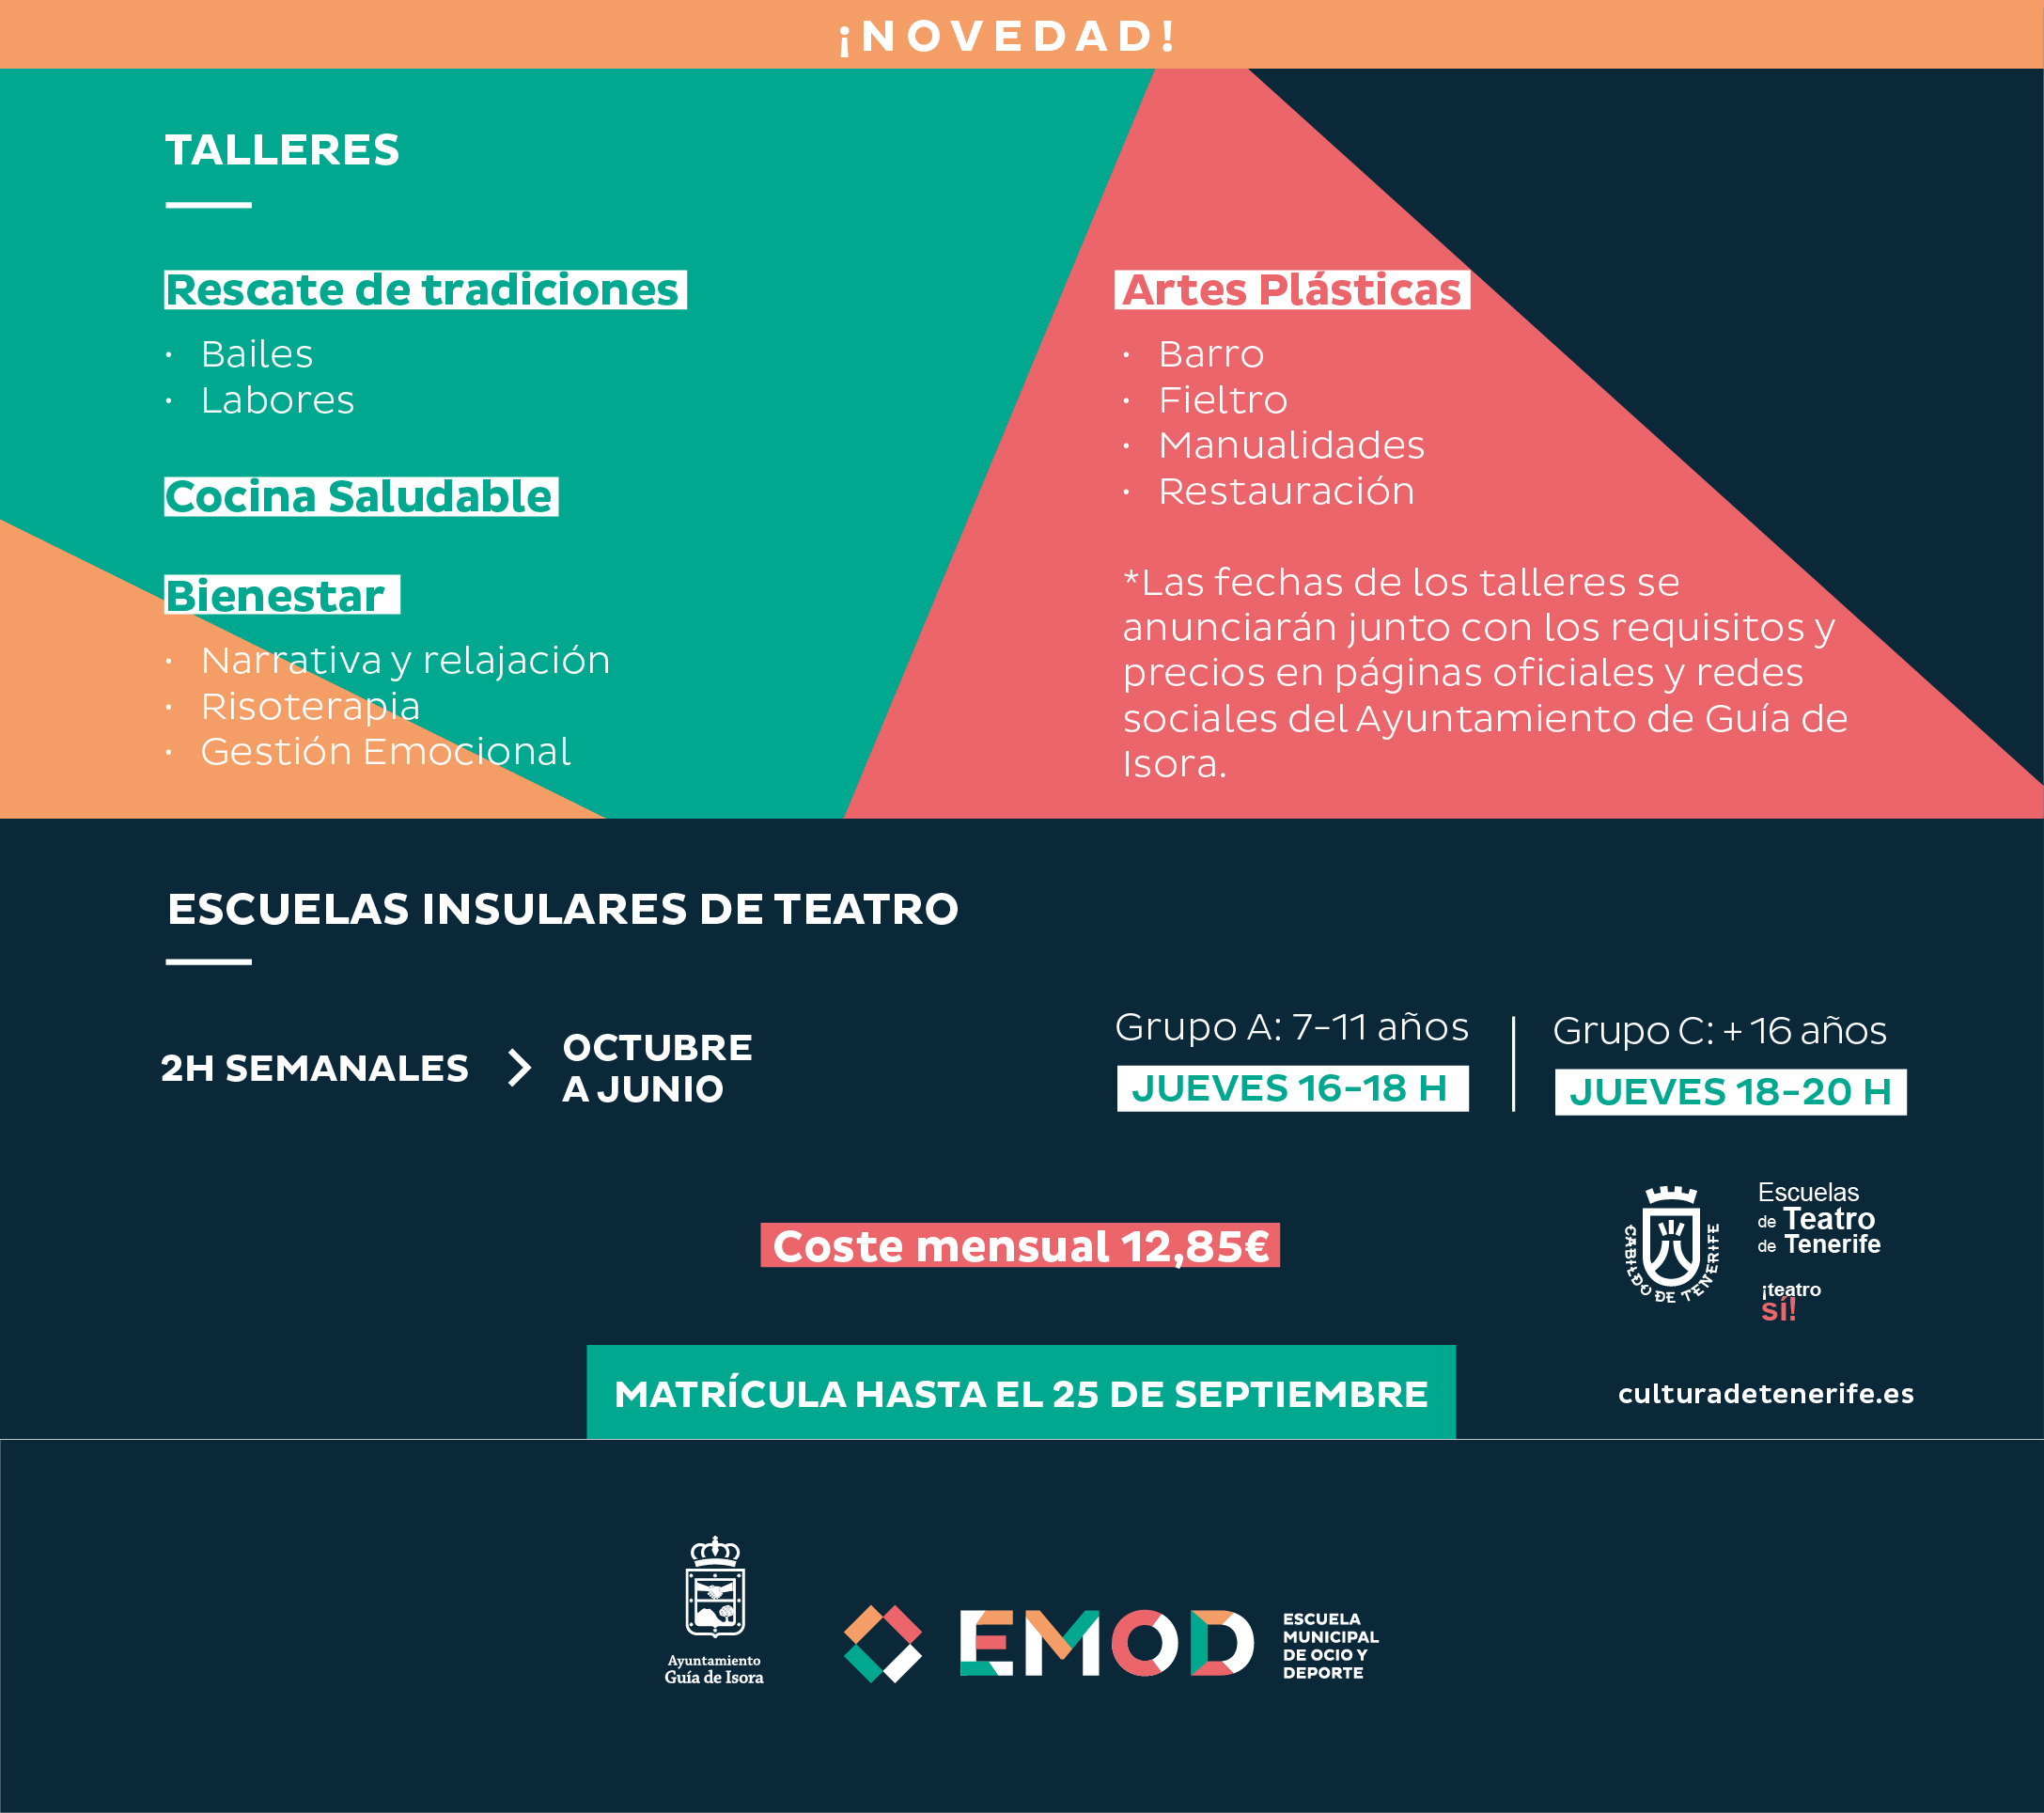 6.- folleto_emod_talleres_2